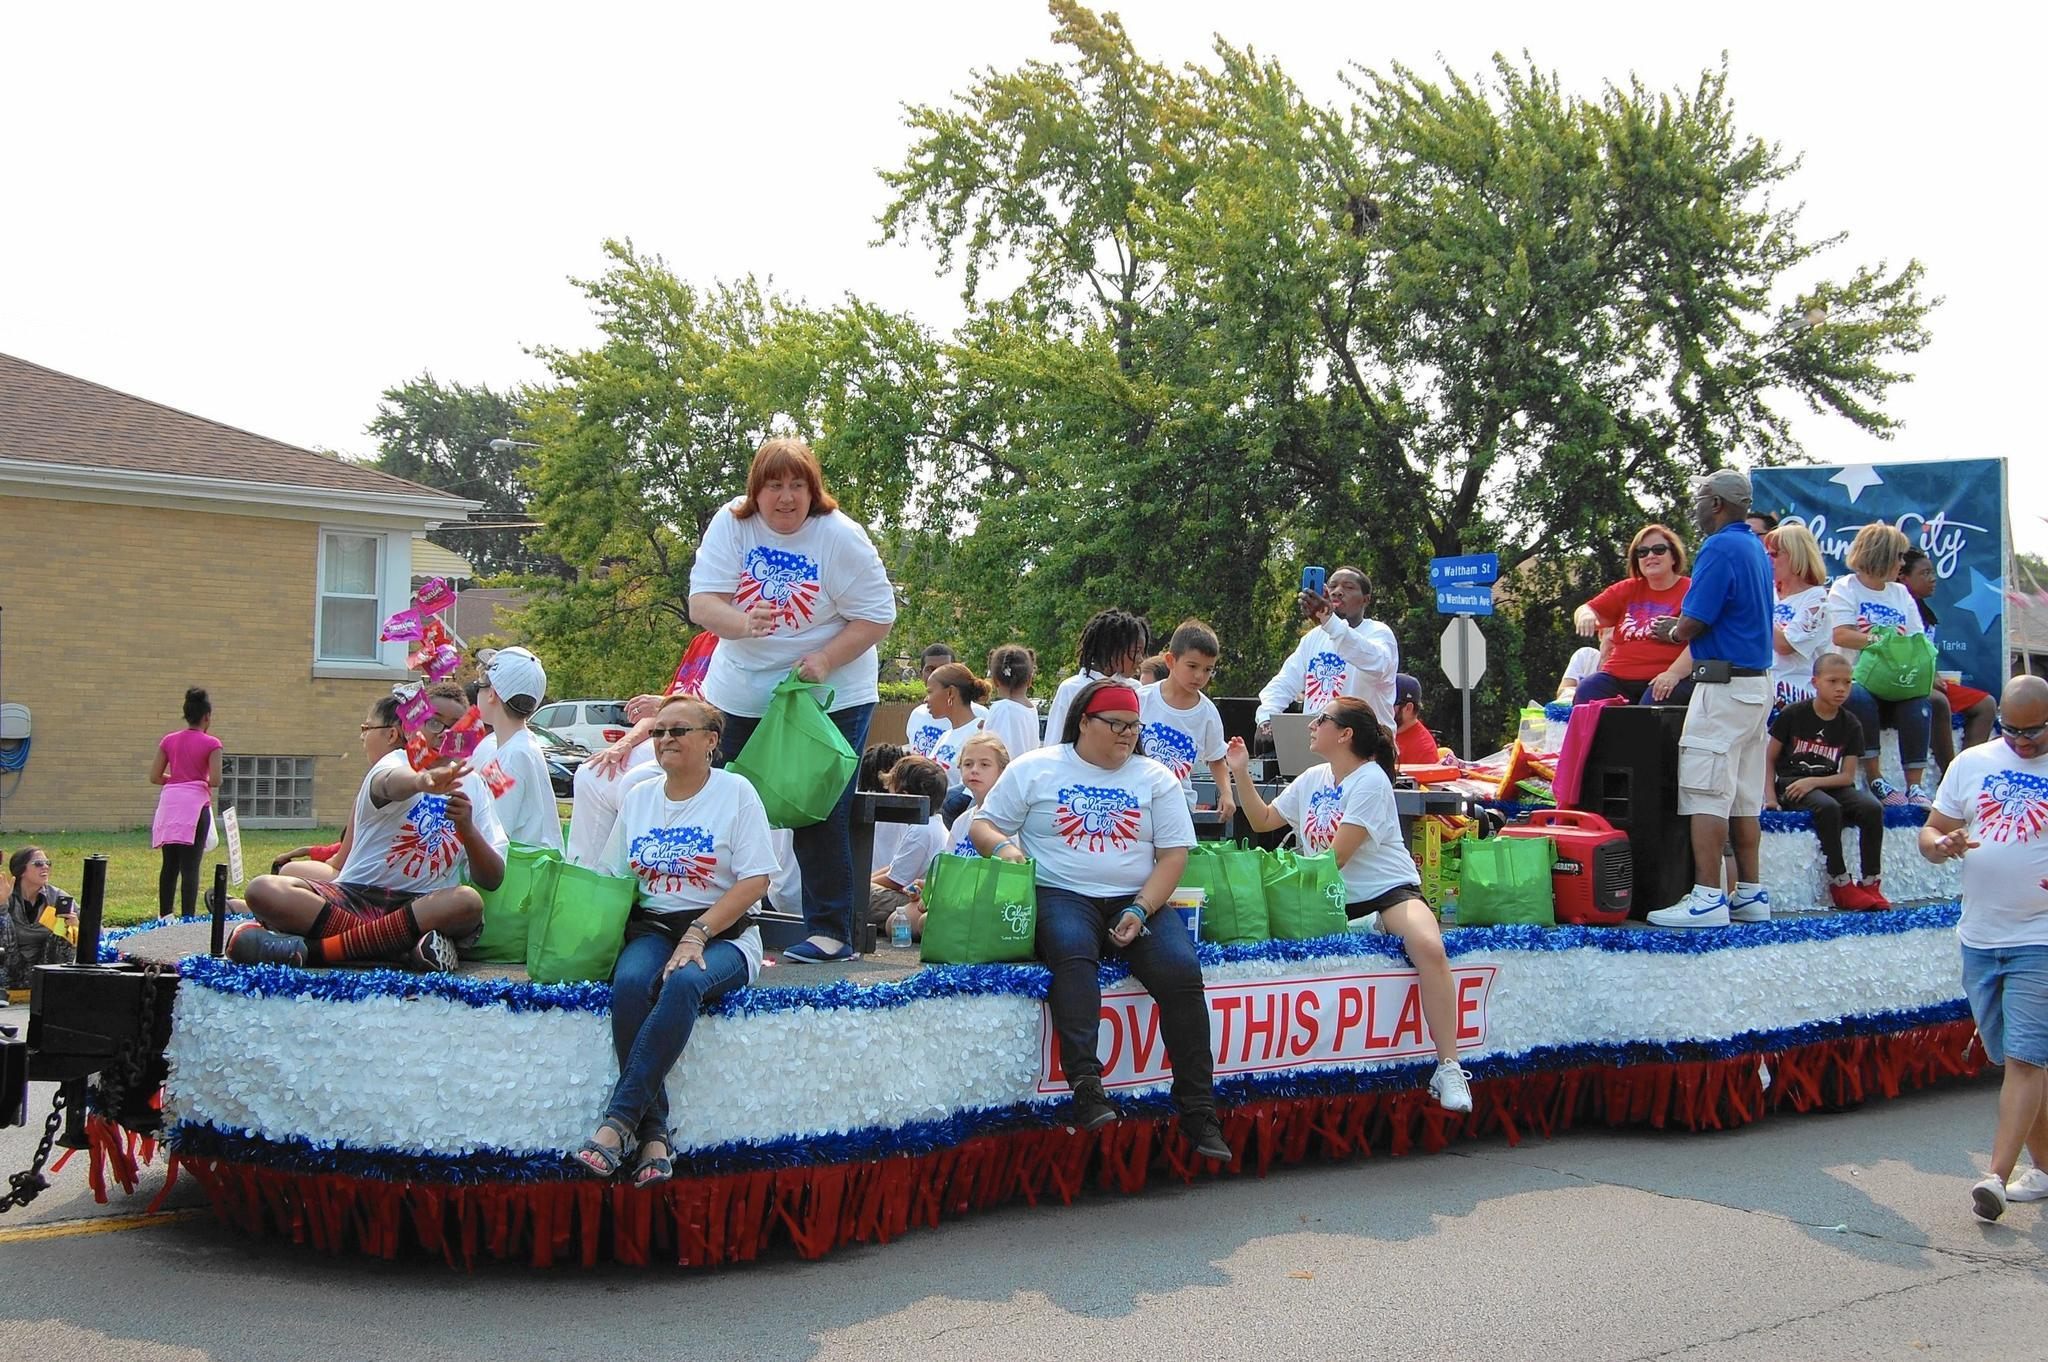 Union workers honored at Calumet City's Labor Day parade